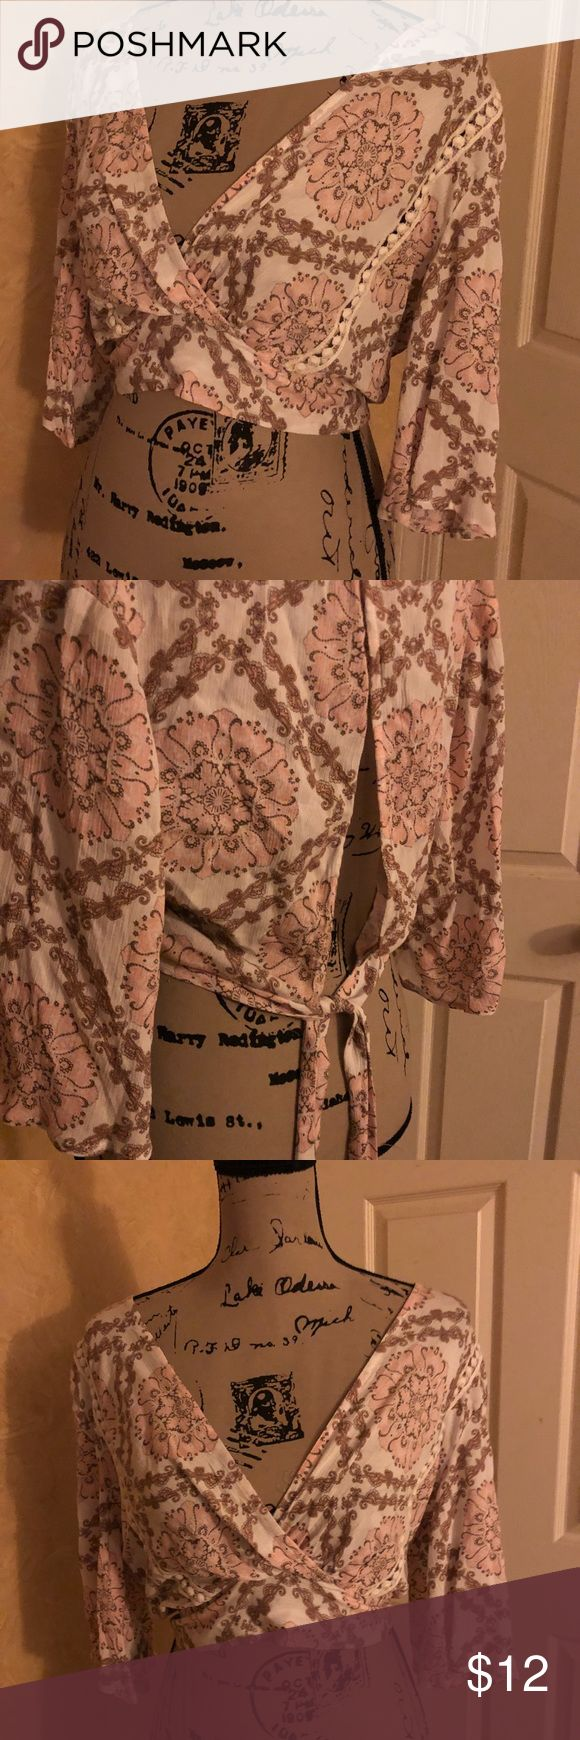 Floral style crop Charolette rouse floral flowy with bell sleeves crop top. Adjustable adorable tie back. Very flattering! Never worn! Tops Crop Tops